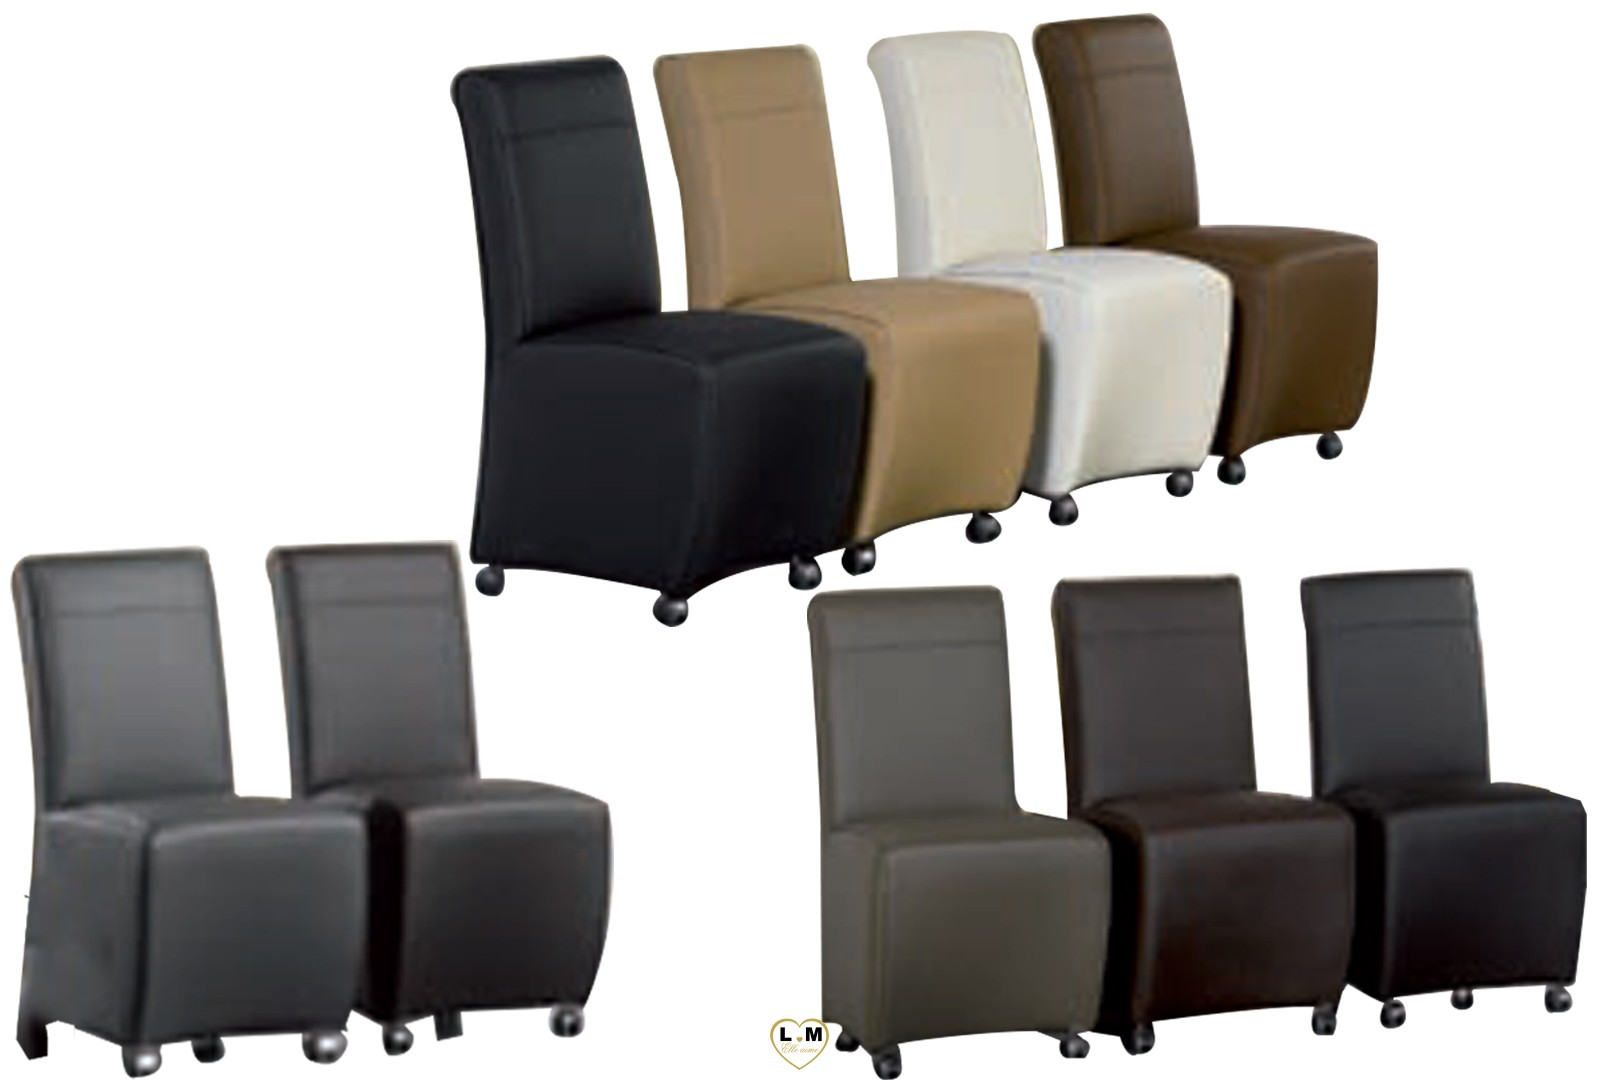 Chaise Roulettes Finest Chaise Roulettes With Chaise